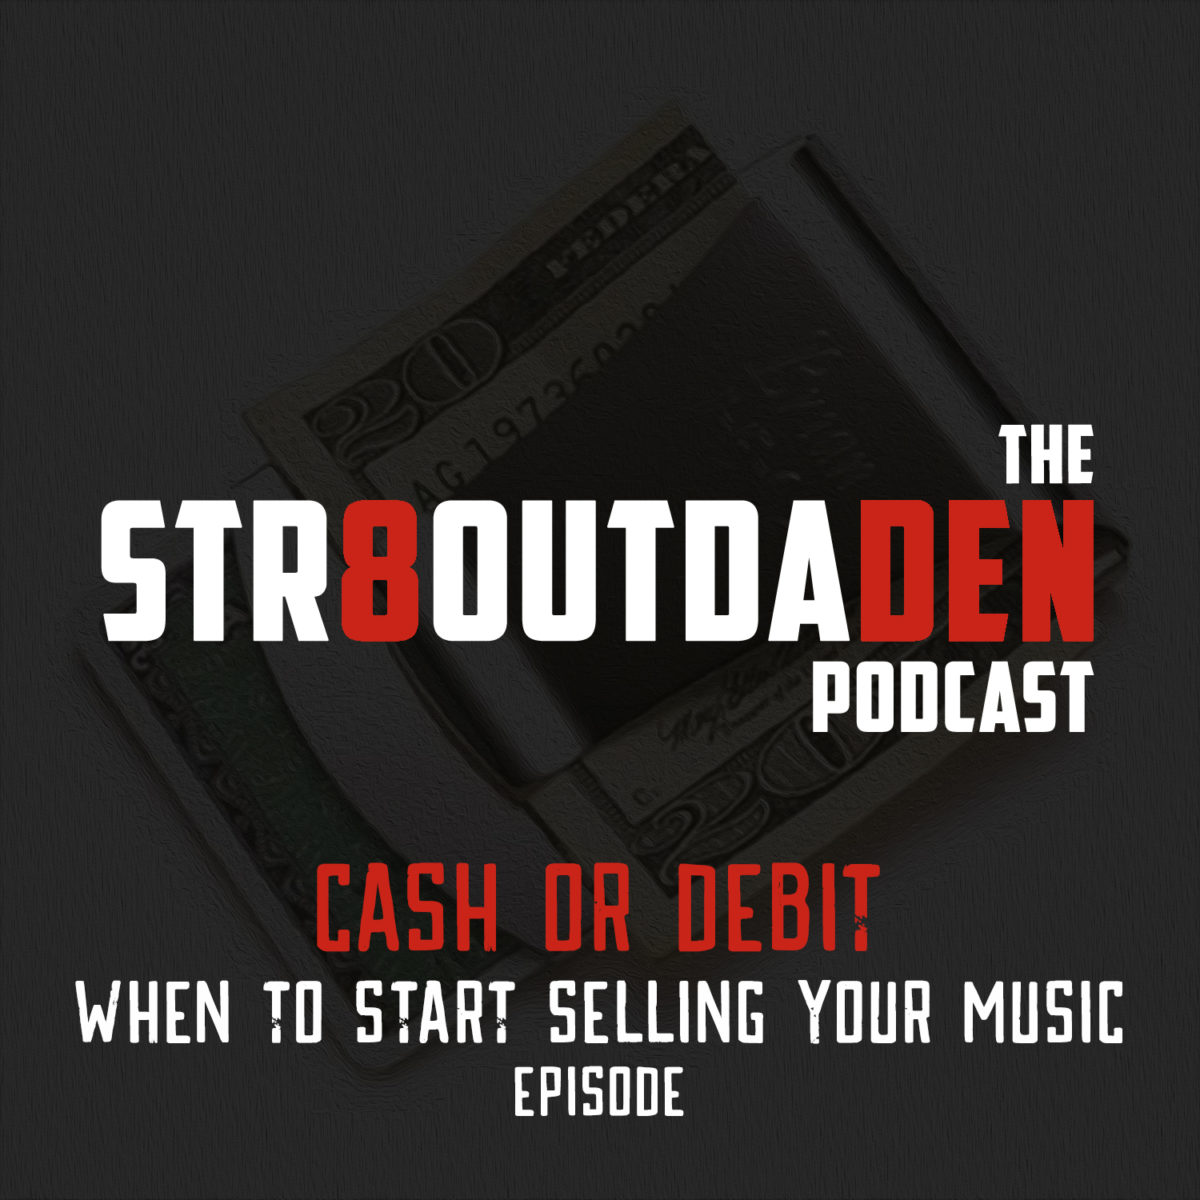 when to start selling your music